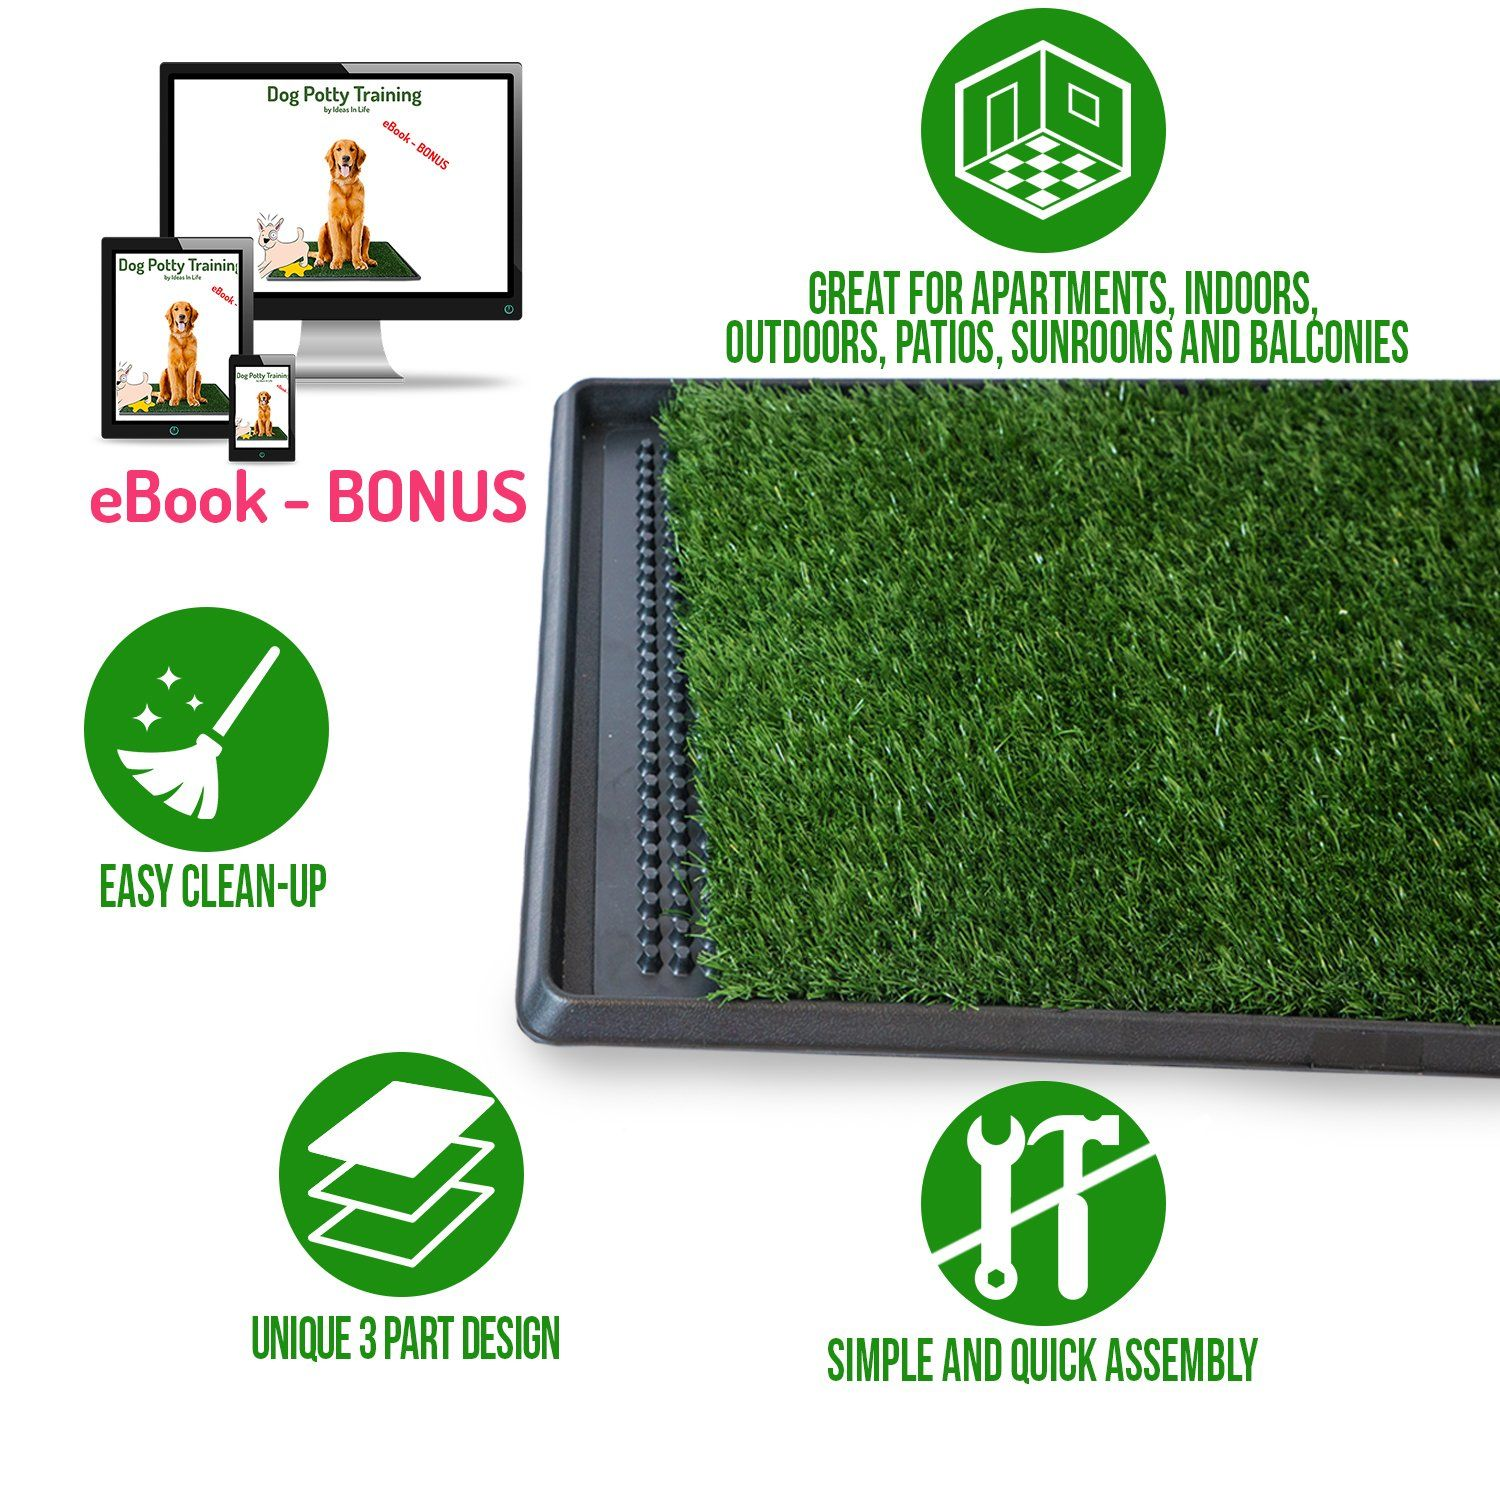 Ideas In Life Dog Potty Grass Pee Pad C Artificial Pet Grass Patch For Dogs To Pee On Great For Puppy Potty Training Dog Potty Potty Training Puppy Pet Grass